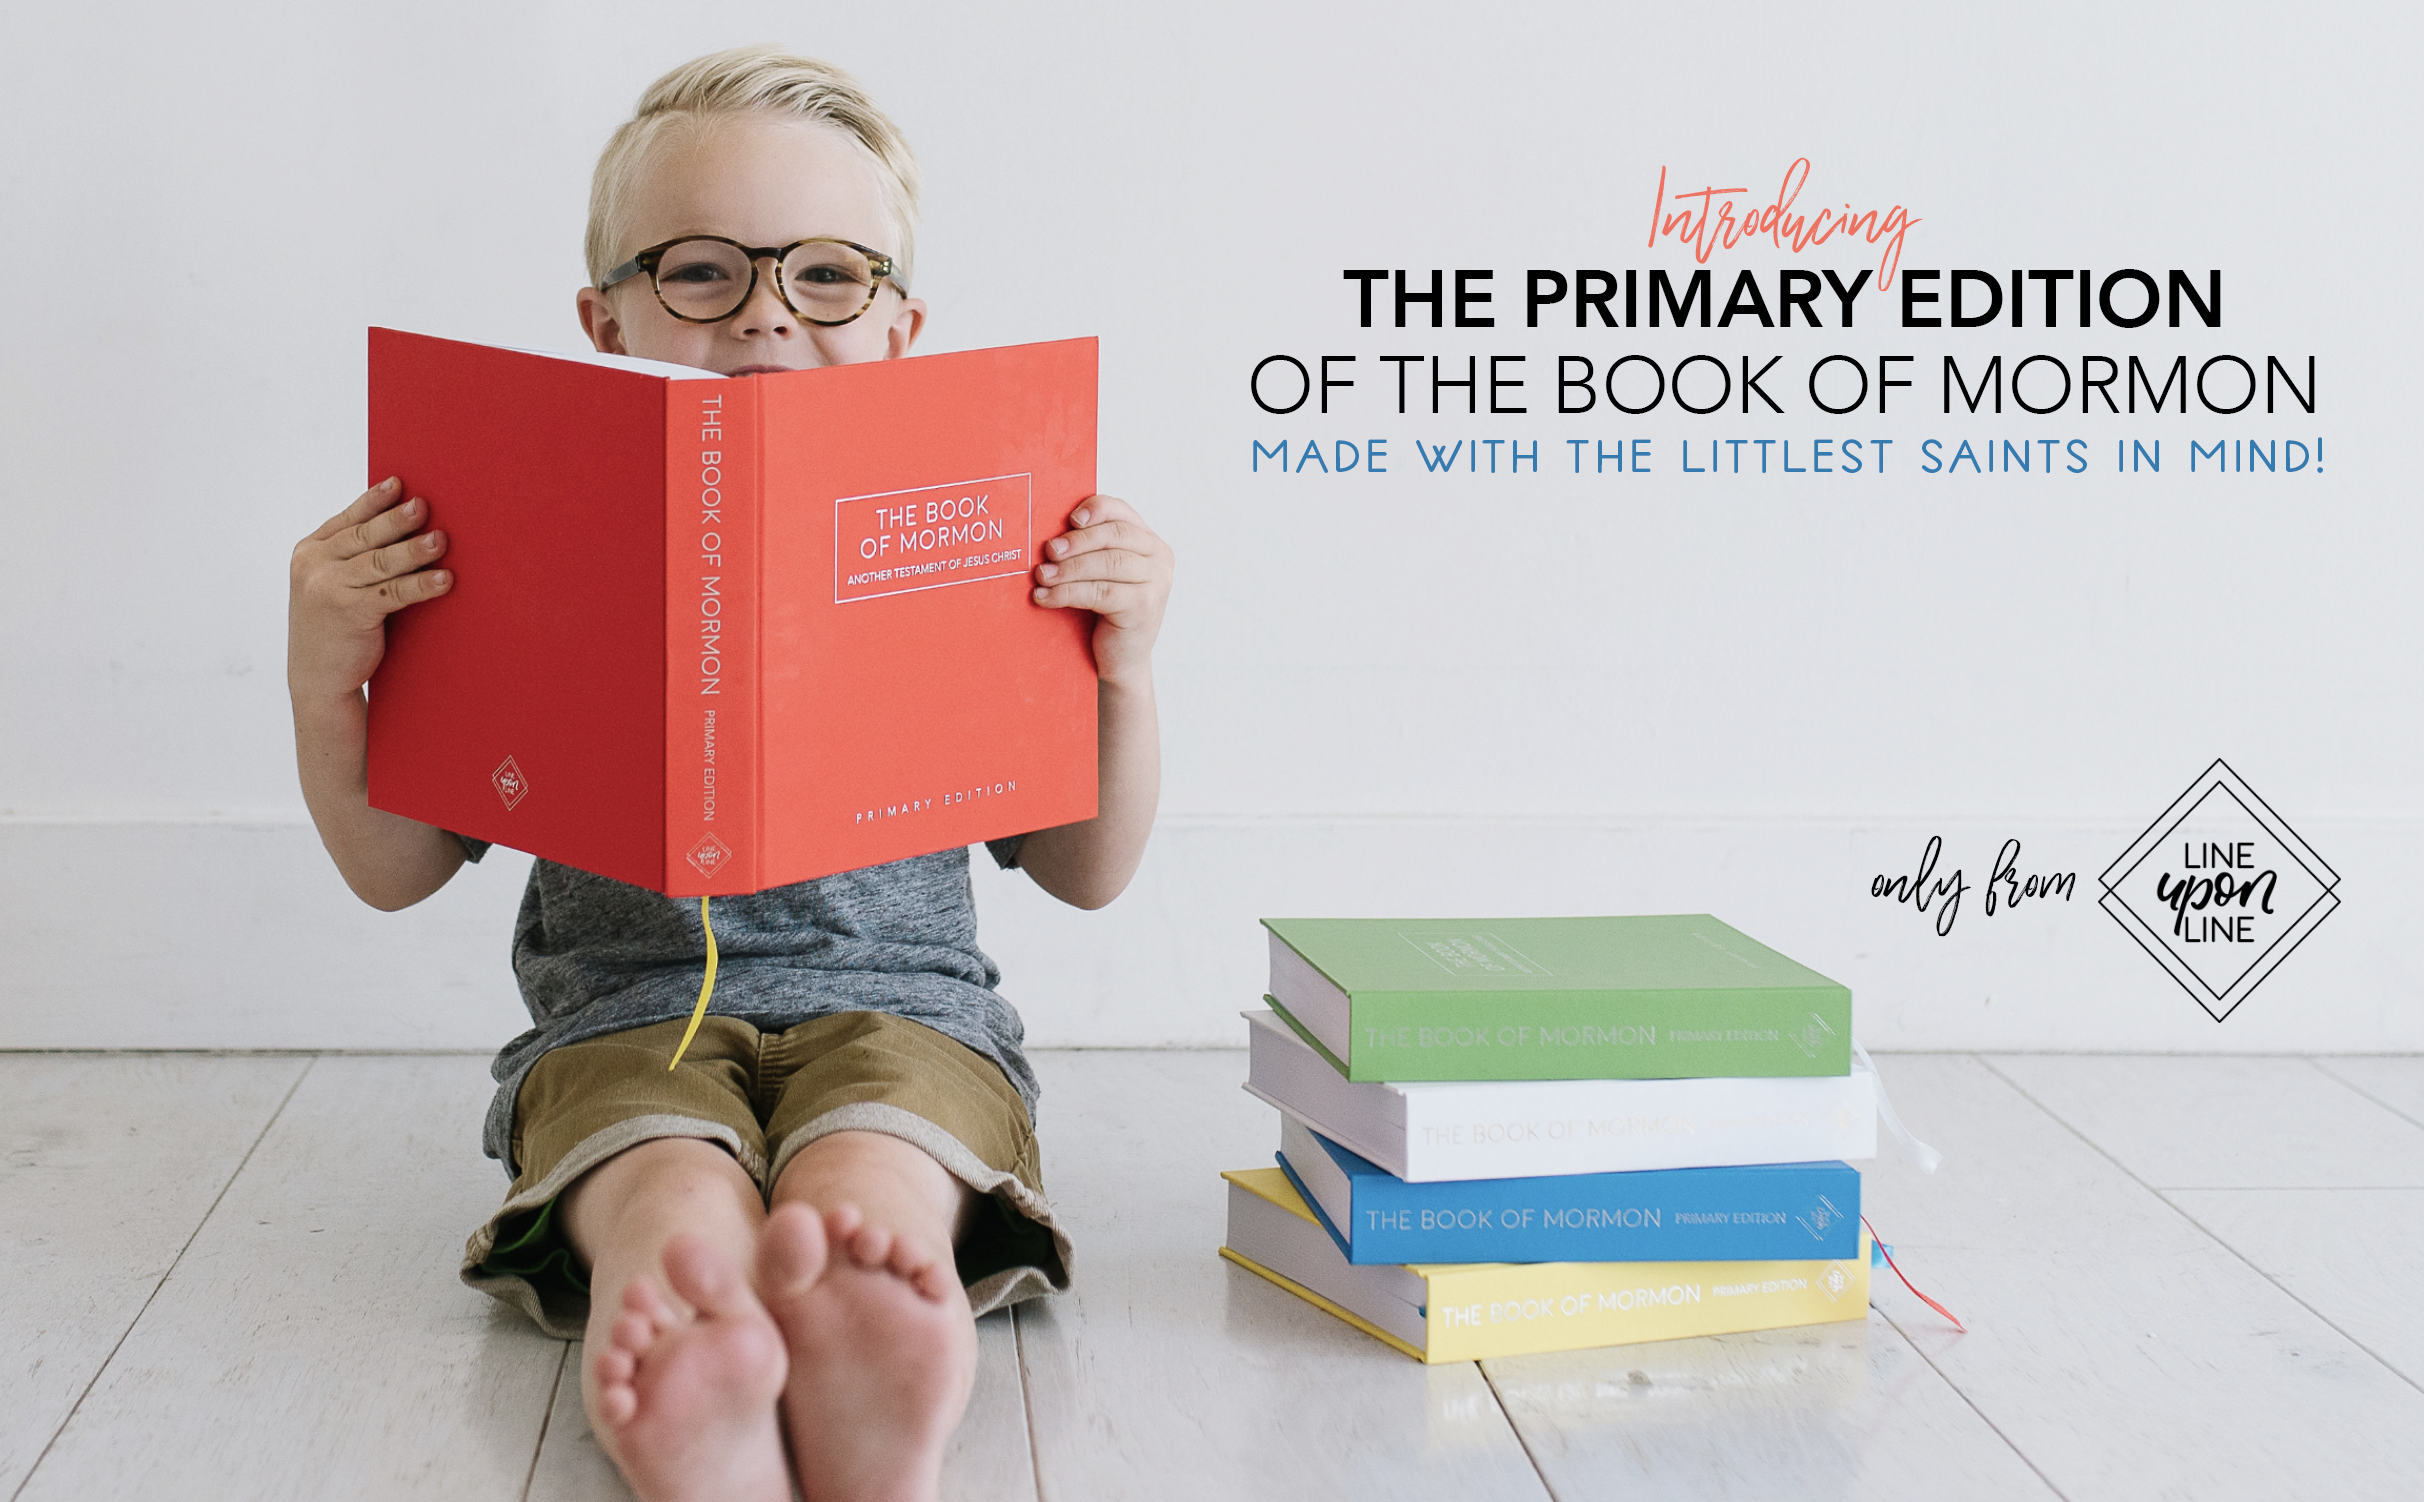 Introducing the Primary Edition of The Book Of mormon, made with the littlest saints in mind! Only from Line Upon Line.